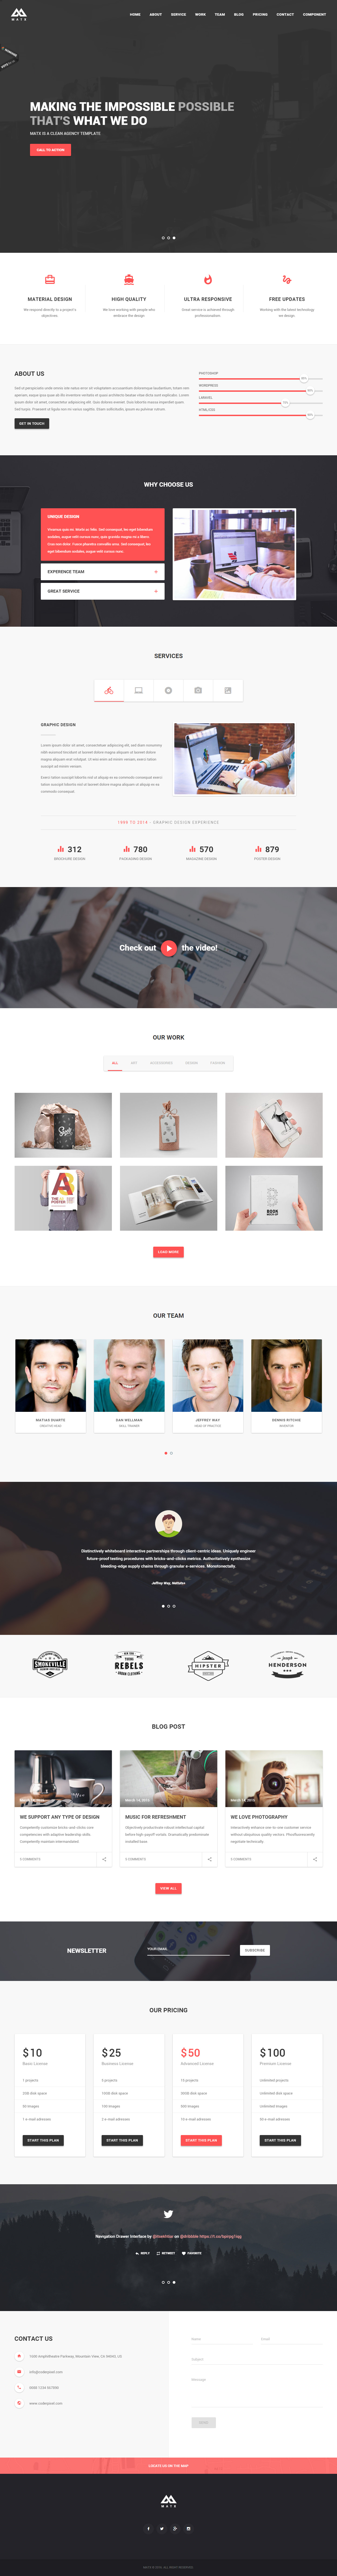 35+ Best Bootstrap Templates 2017 - Responsive Miracle